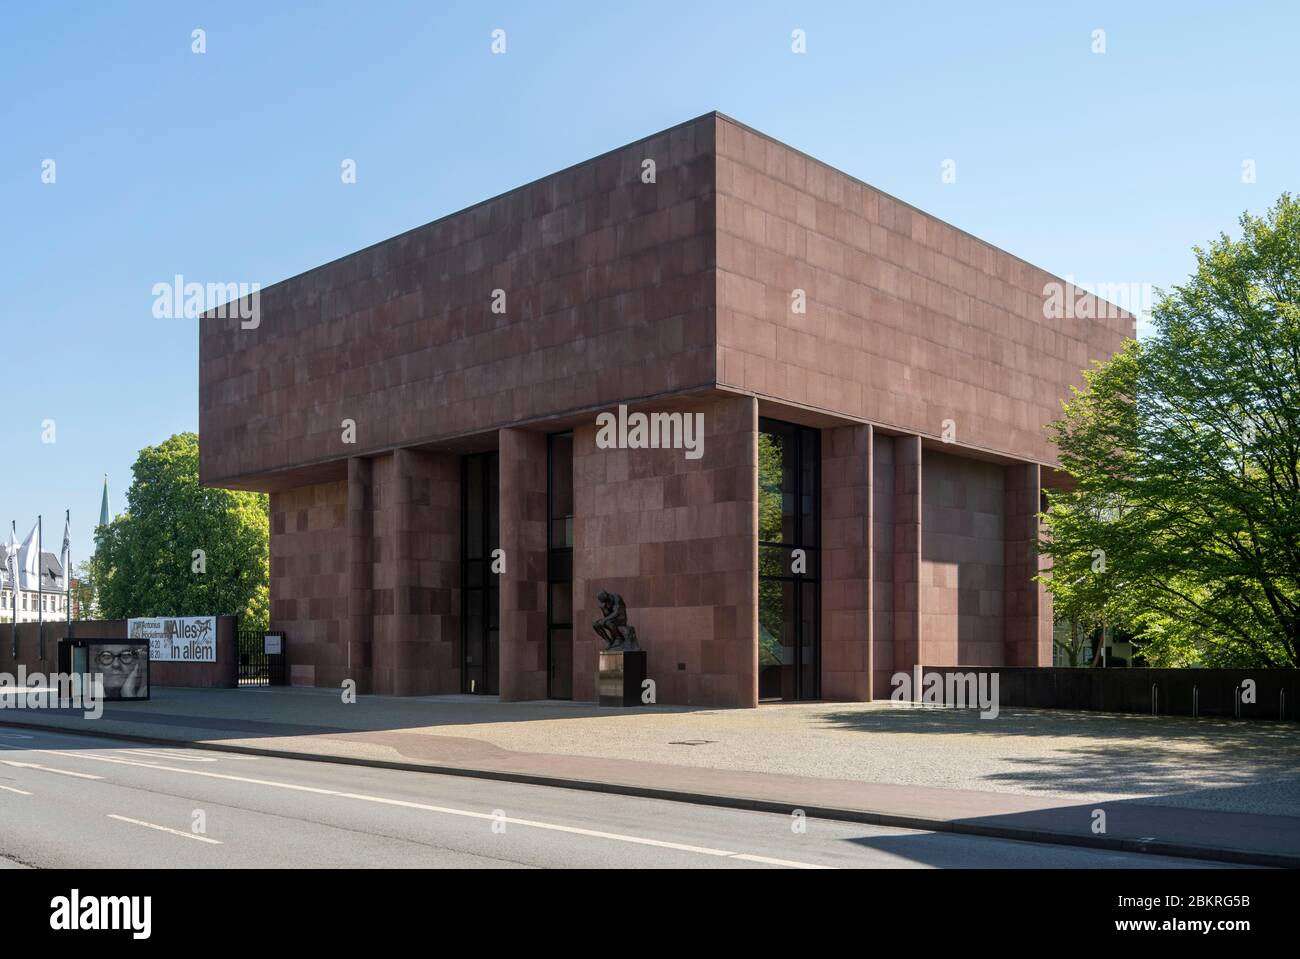 Kunsthalle Bielefeld High Resolution Stock Photography And Images